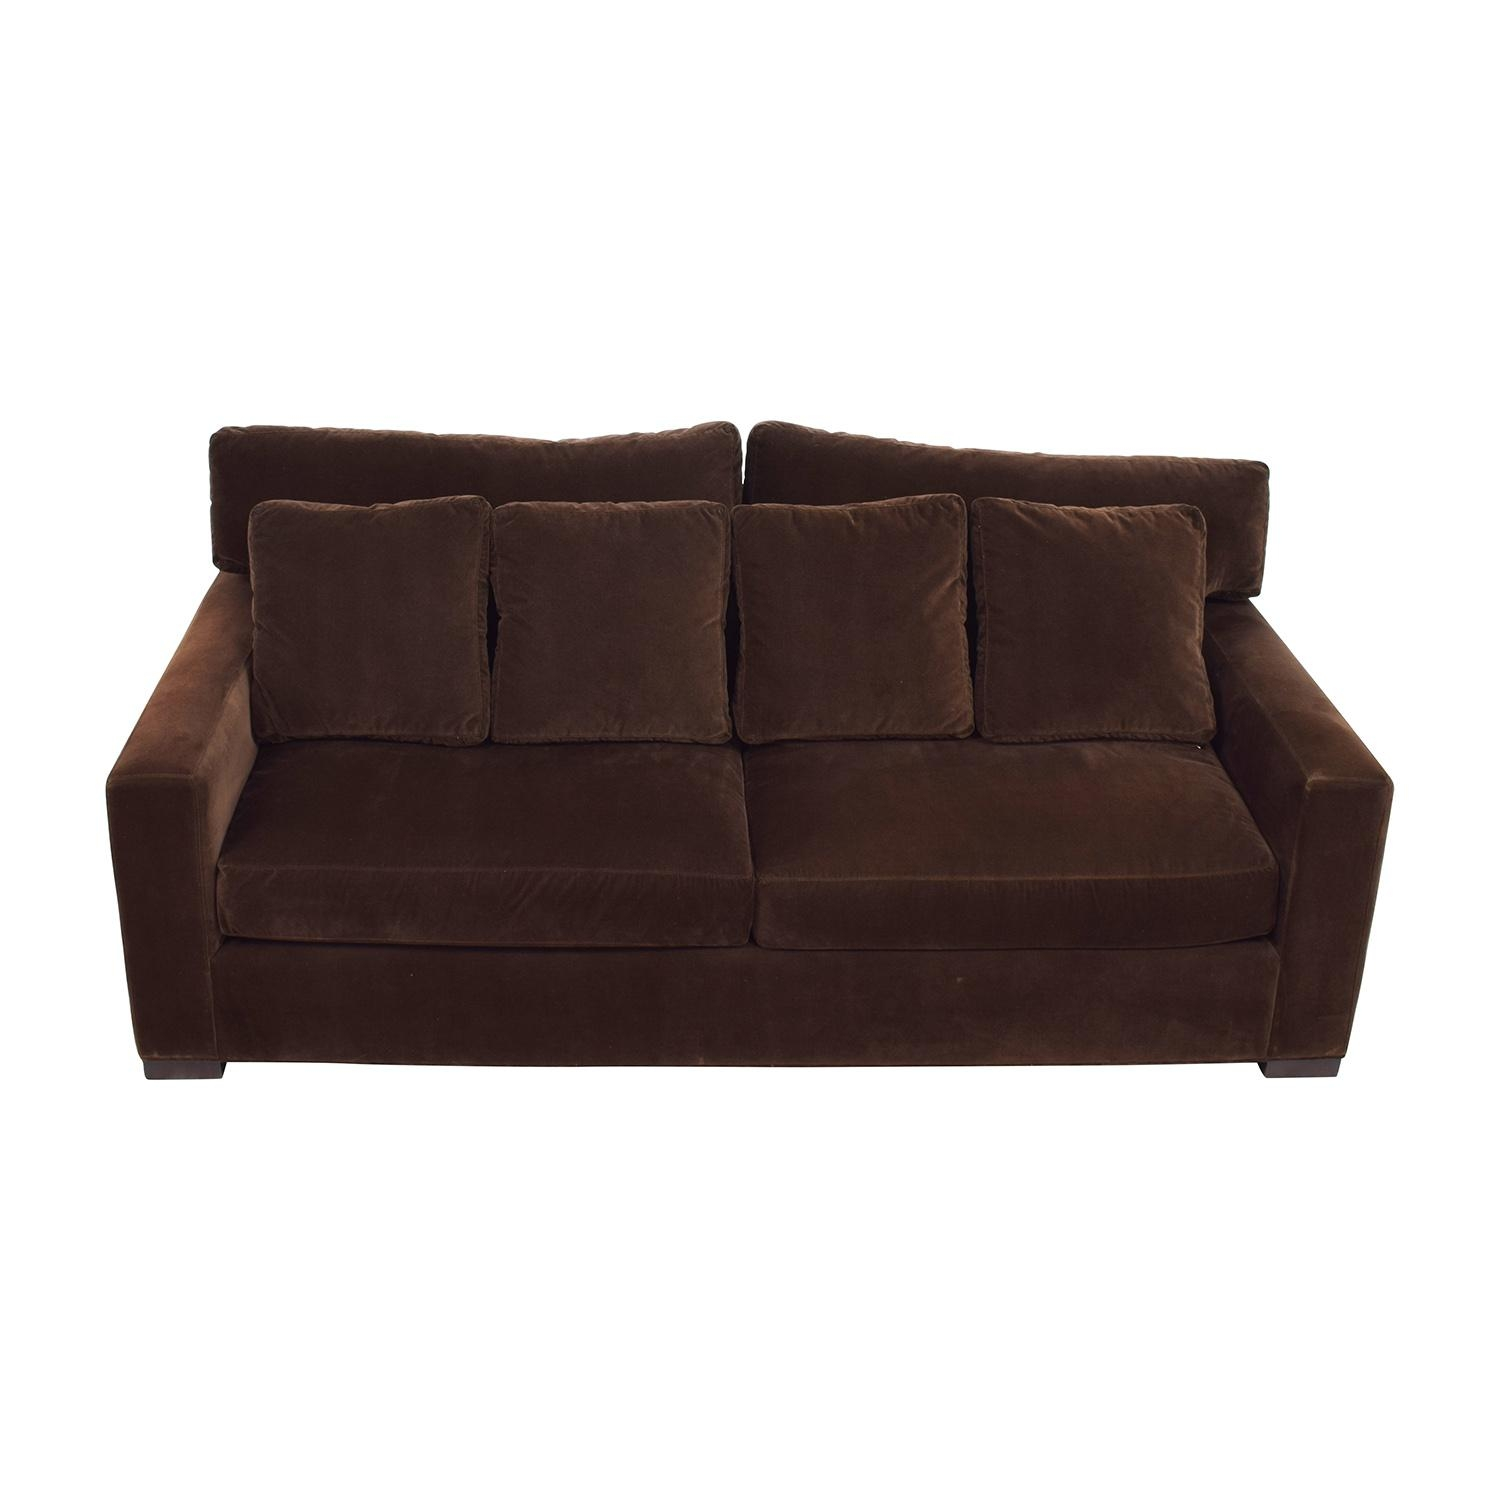 Used Sofas Nj inside Brown Velvet Sofas